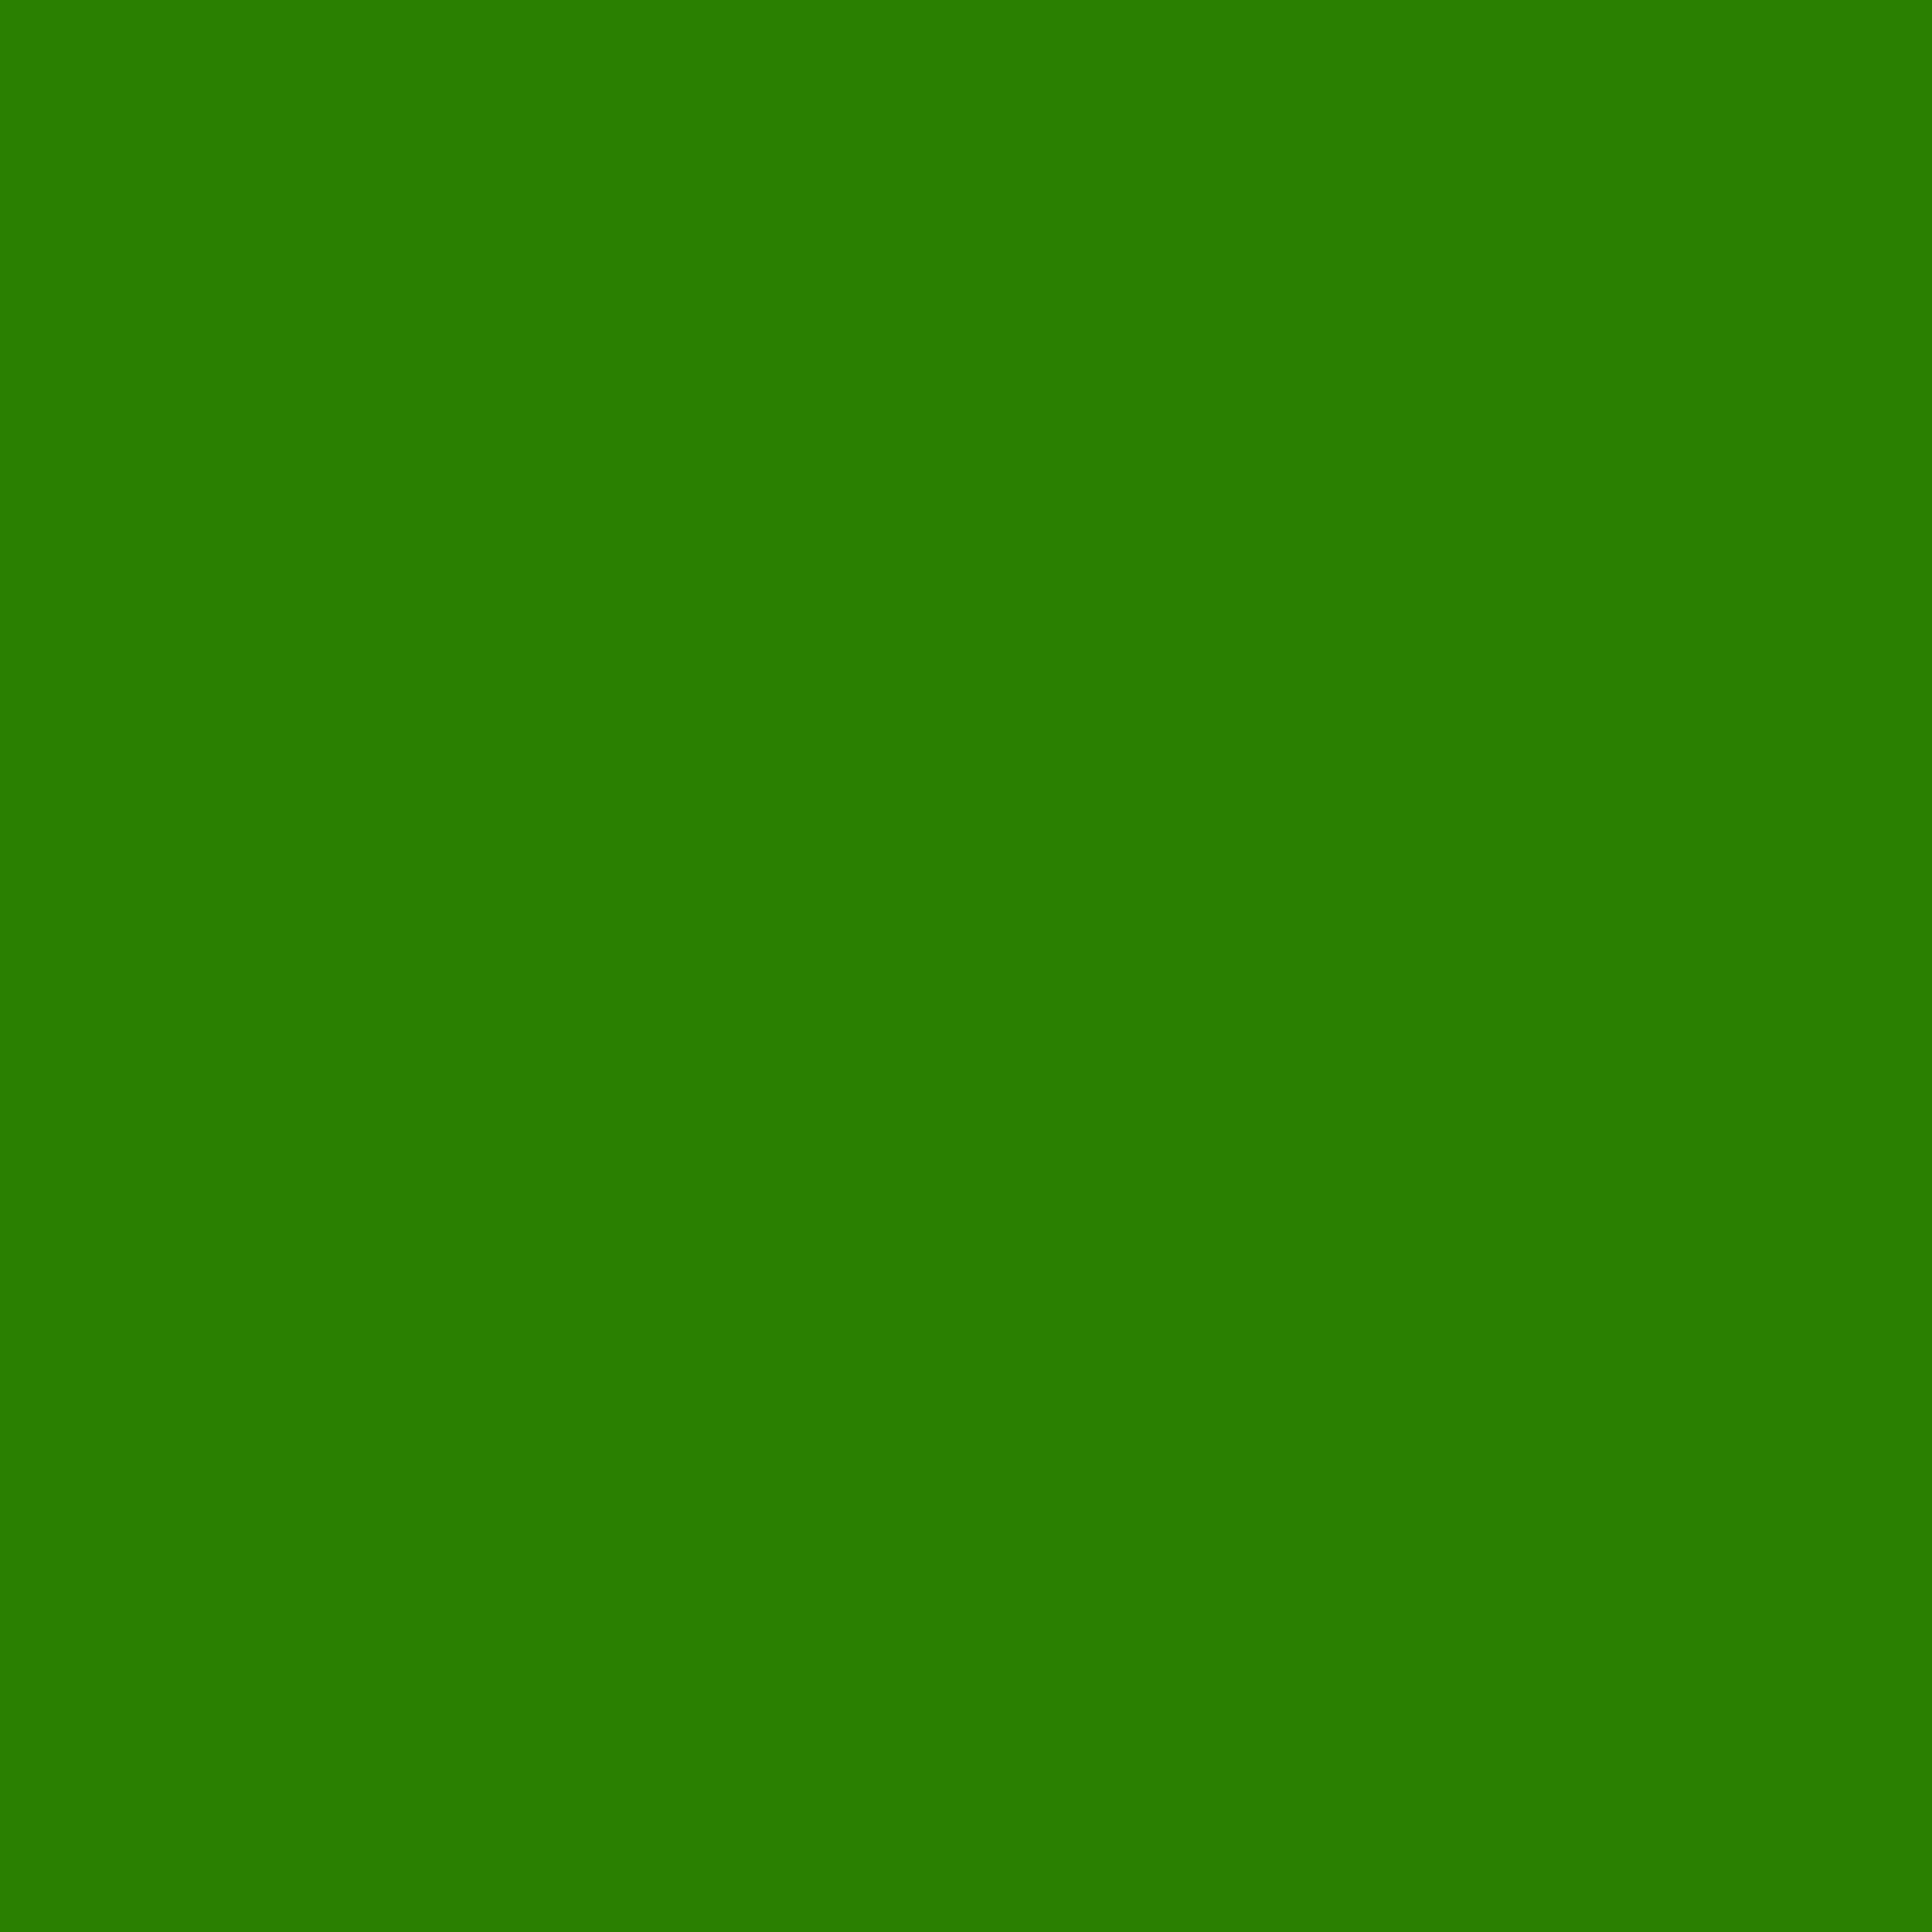 2732x2732 Napier Green Solid Color Background